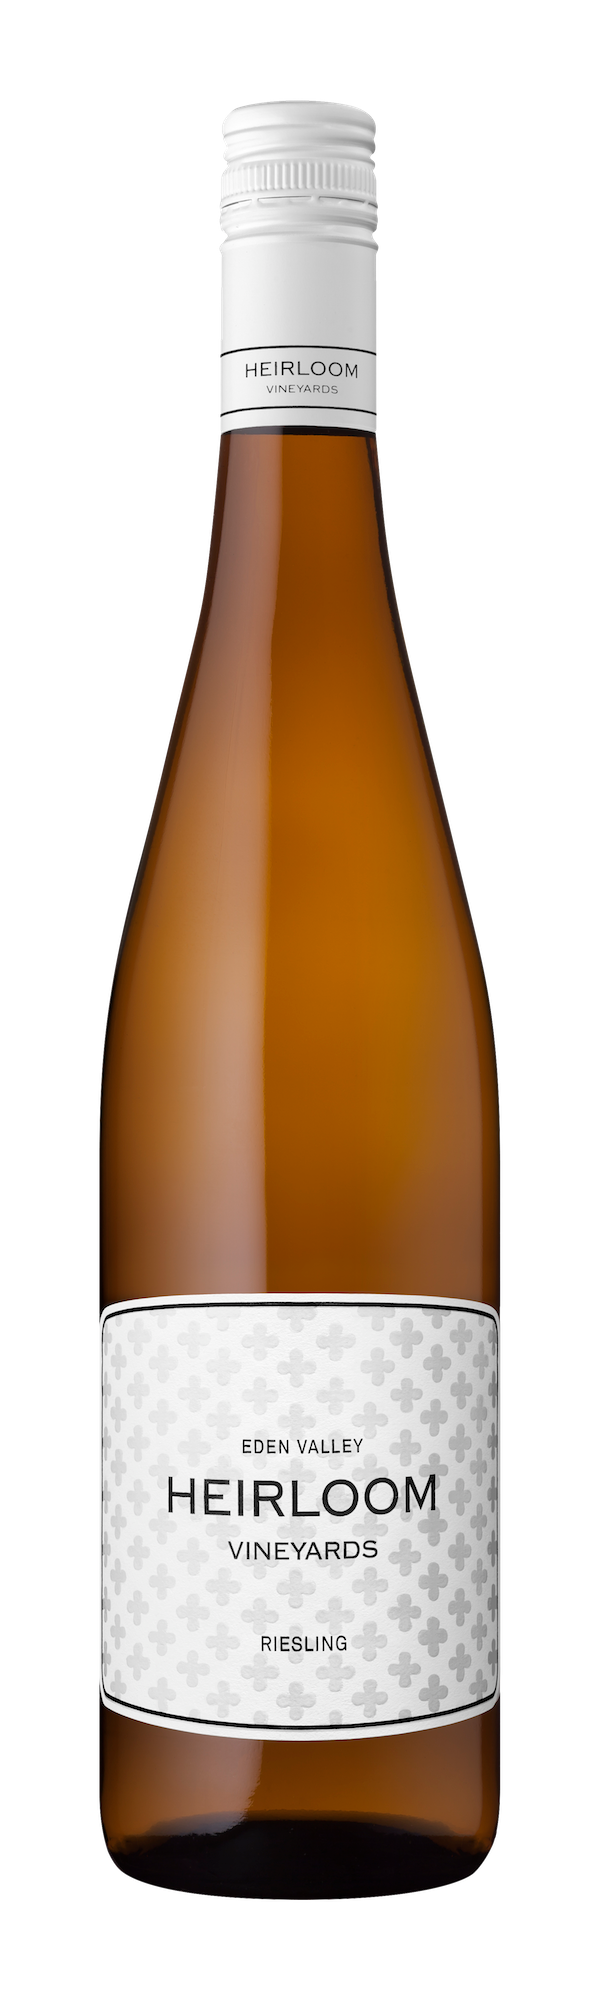 Eden Valley Riesling 2018